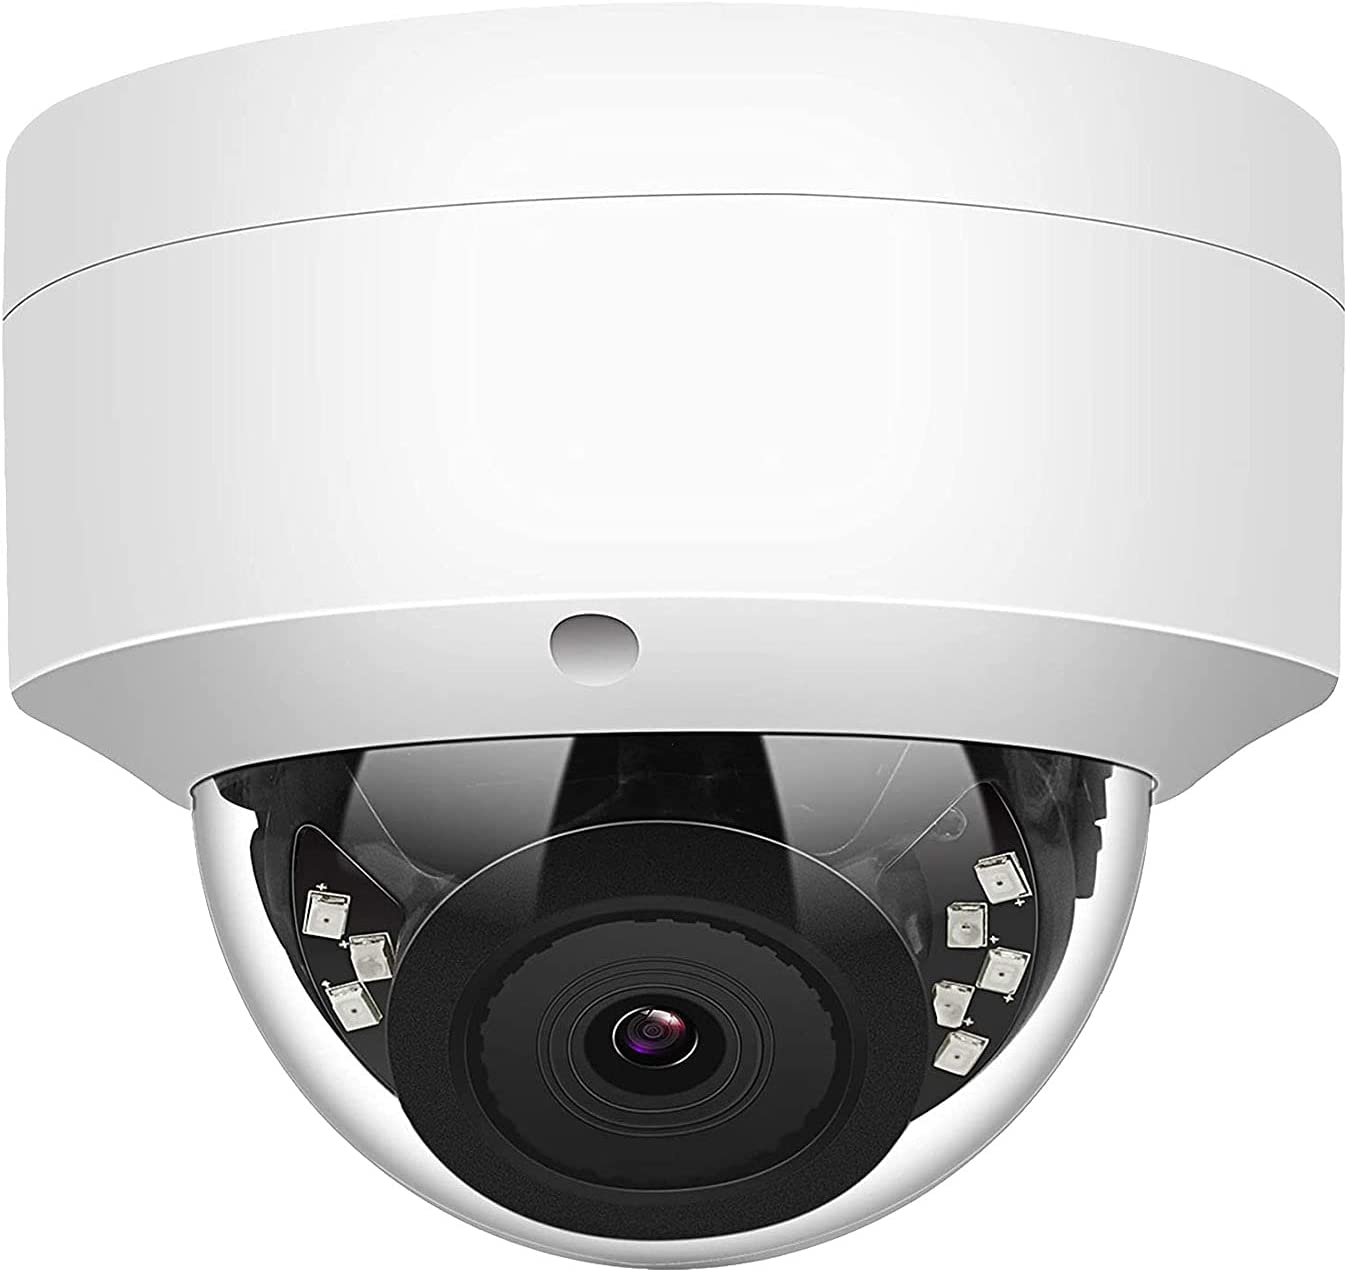 LINOVISION 5MP POE IP Dome Security Camera with Audio, 2.8mm Wide Angle, 100ft IR Outdoor Security Camera Vandal-Proof and IP66 Waterproof with Remote Access